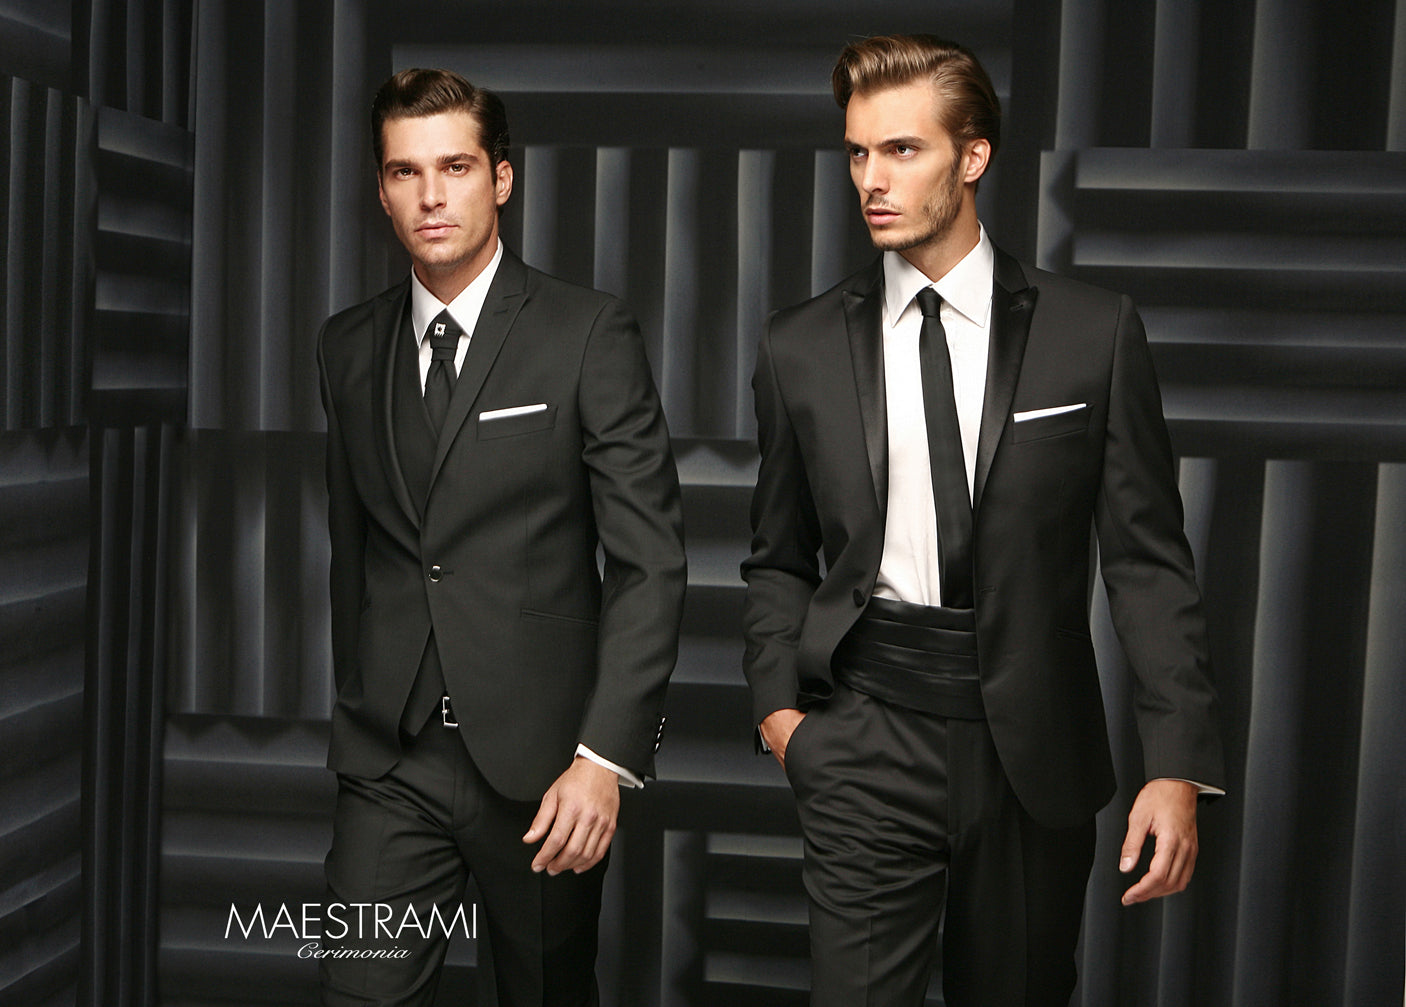 MAESTRAMI Custom Made Italian Suit 1323